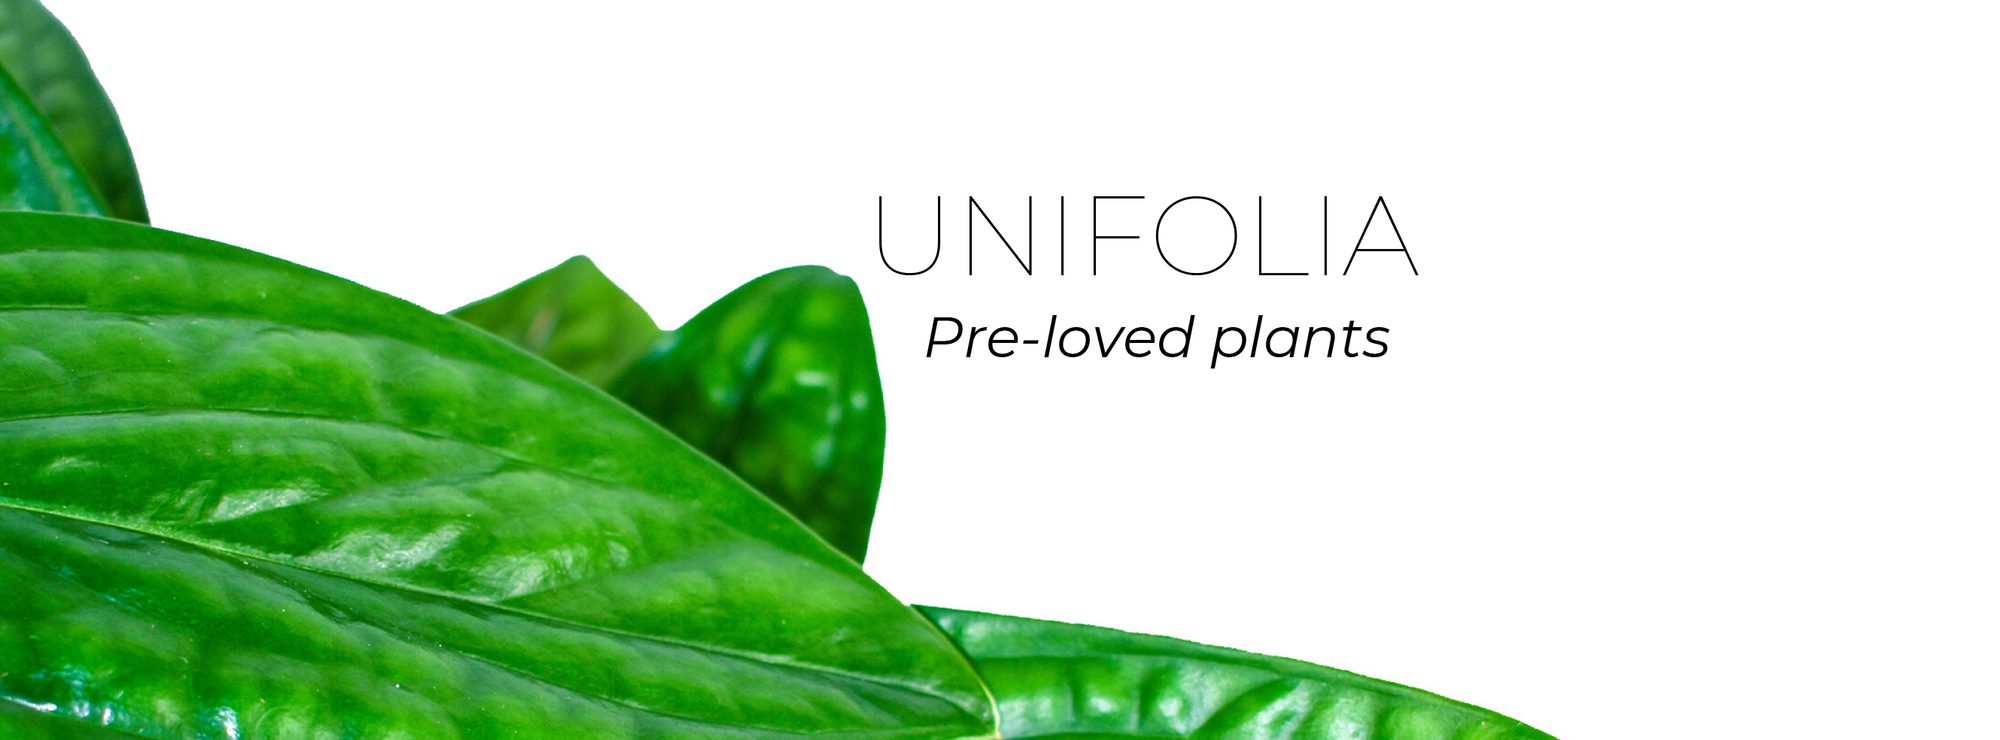 Unifolia - only preloved tropical plants!